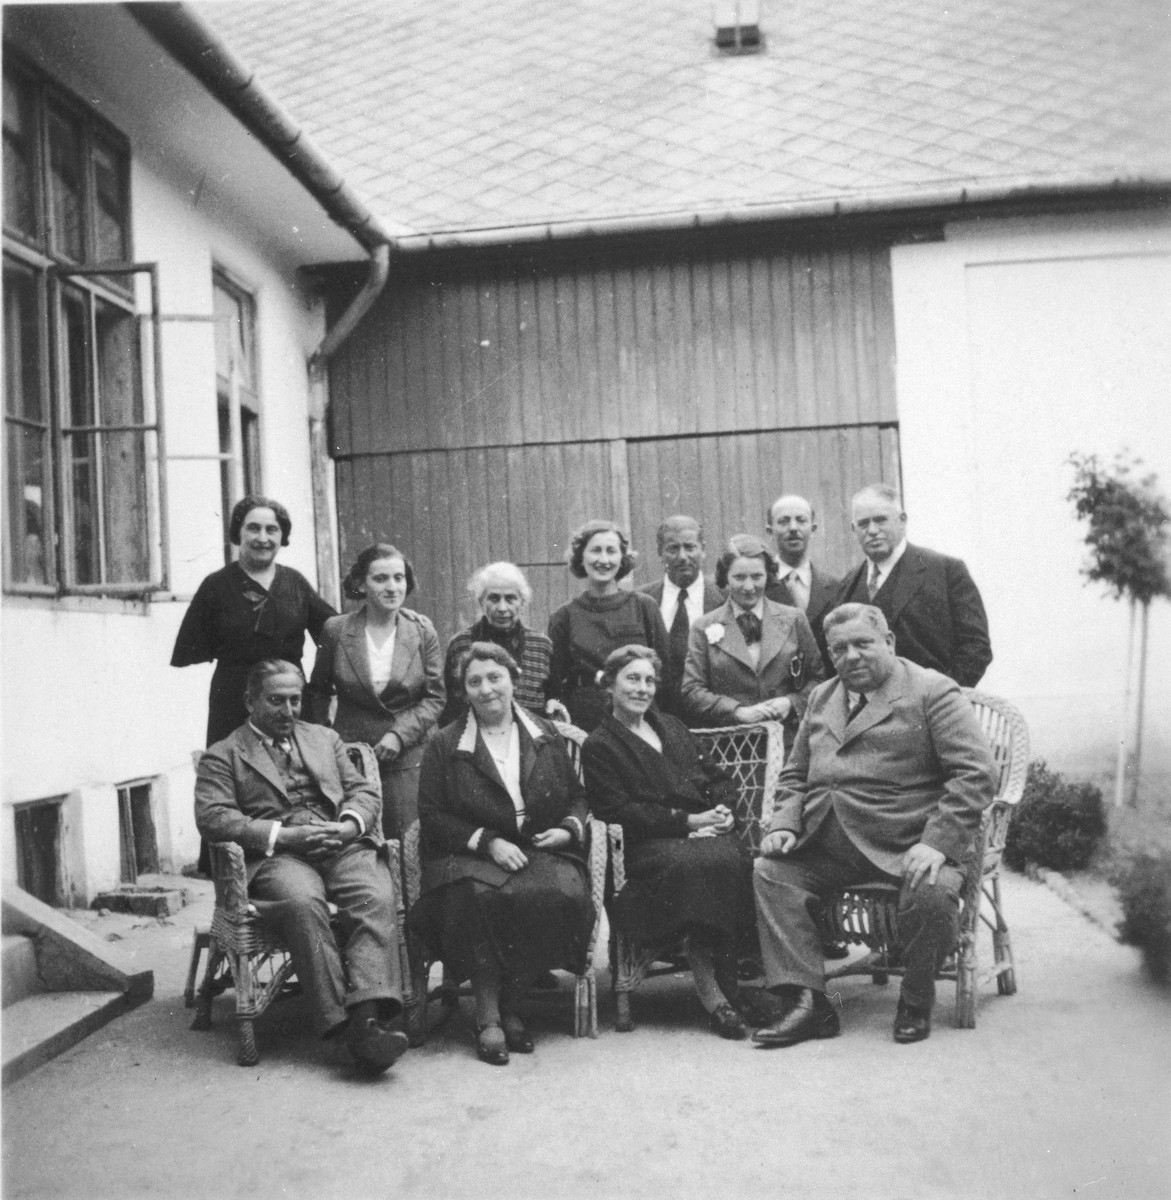 Group portrait of the extended Kalman family in Kalocsa, Hungary.